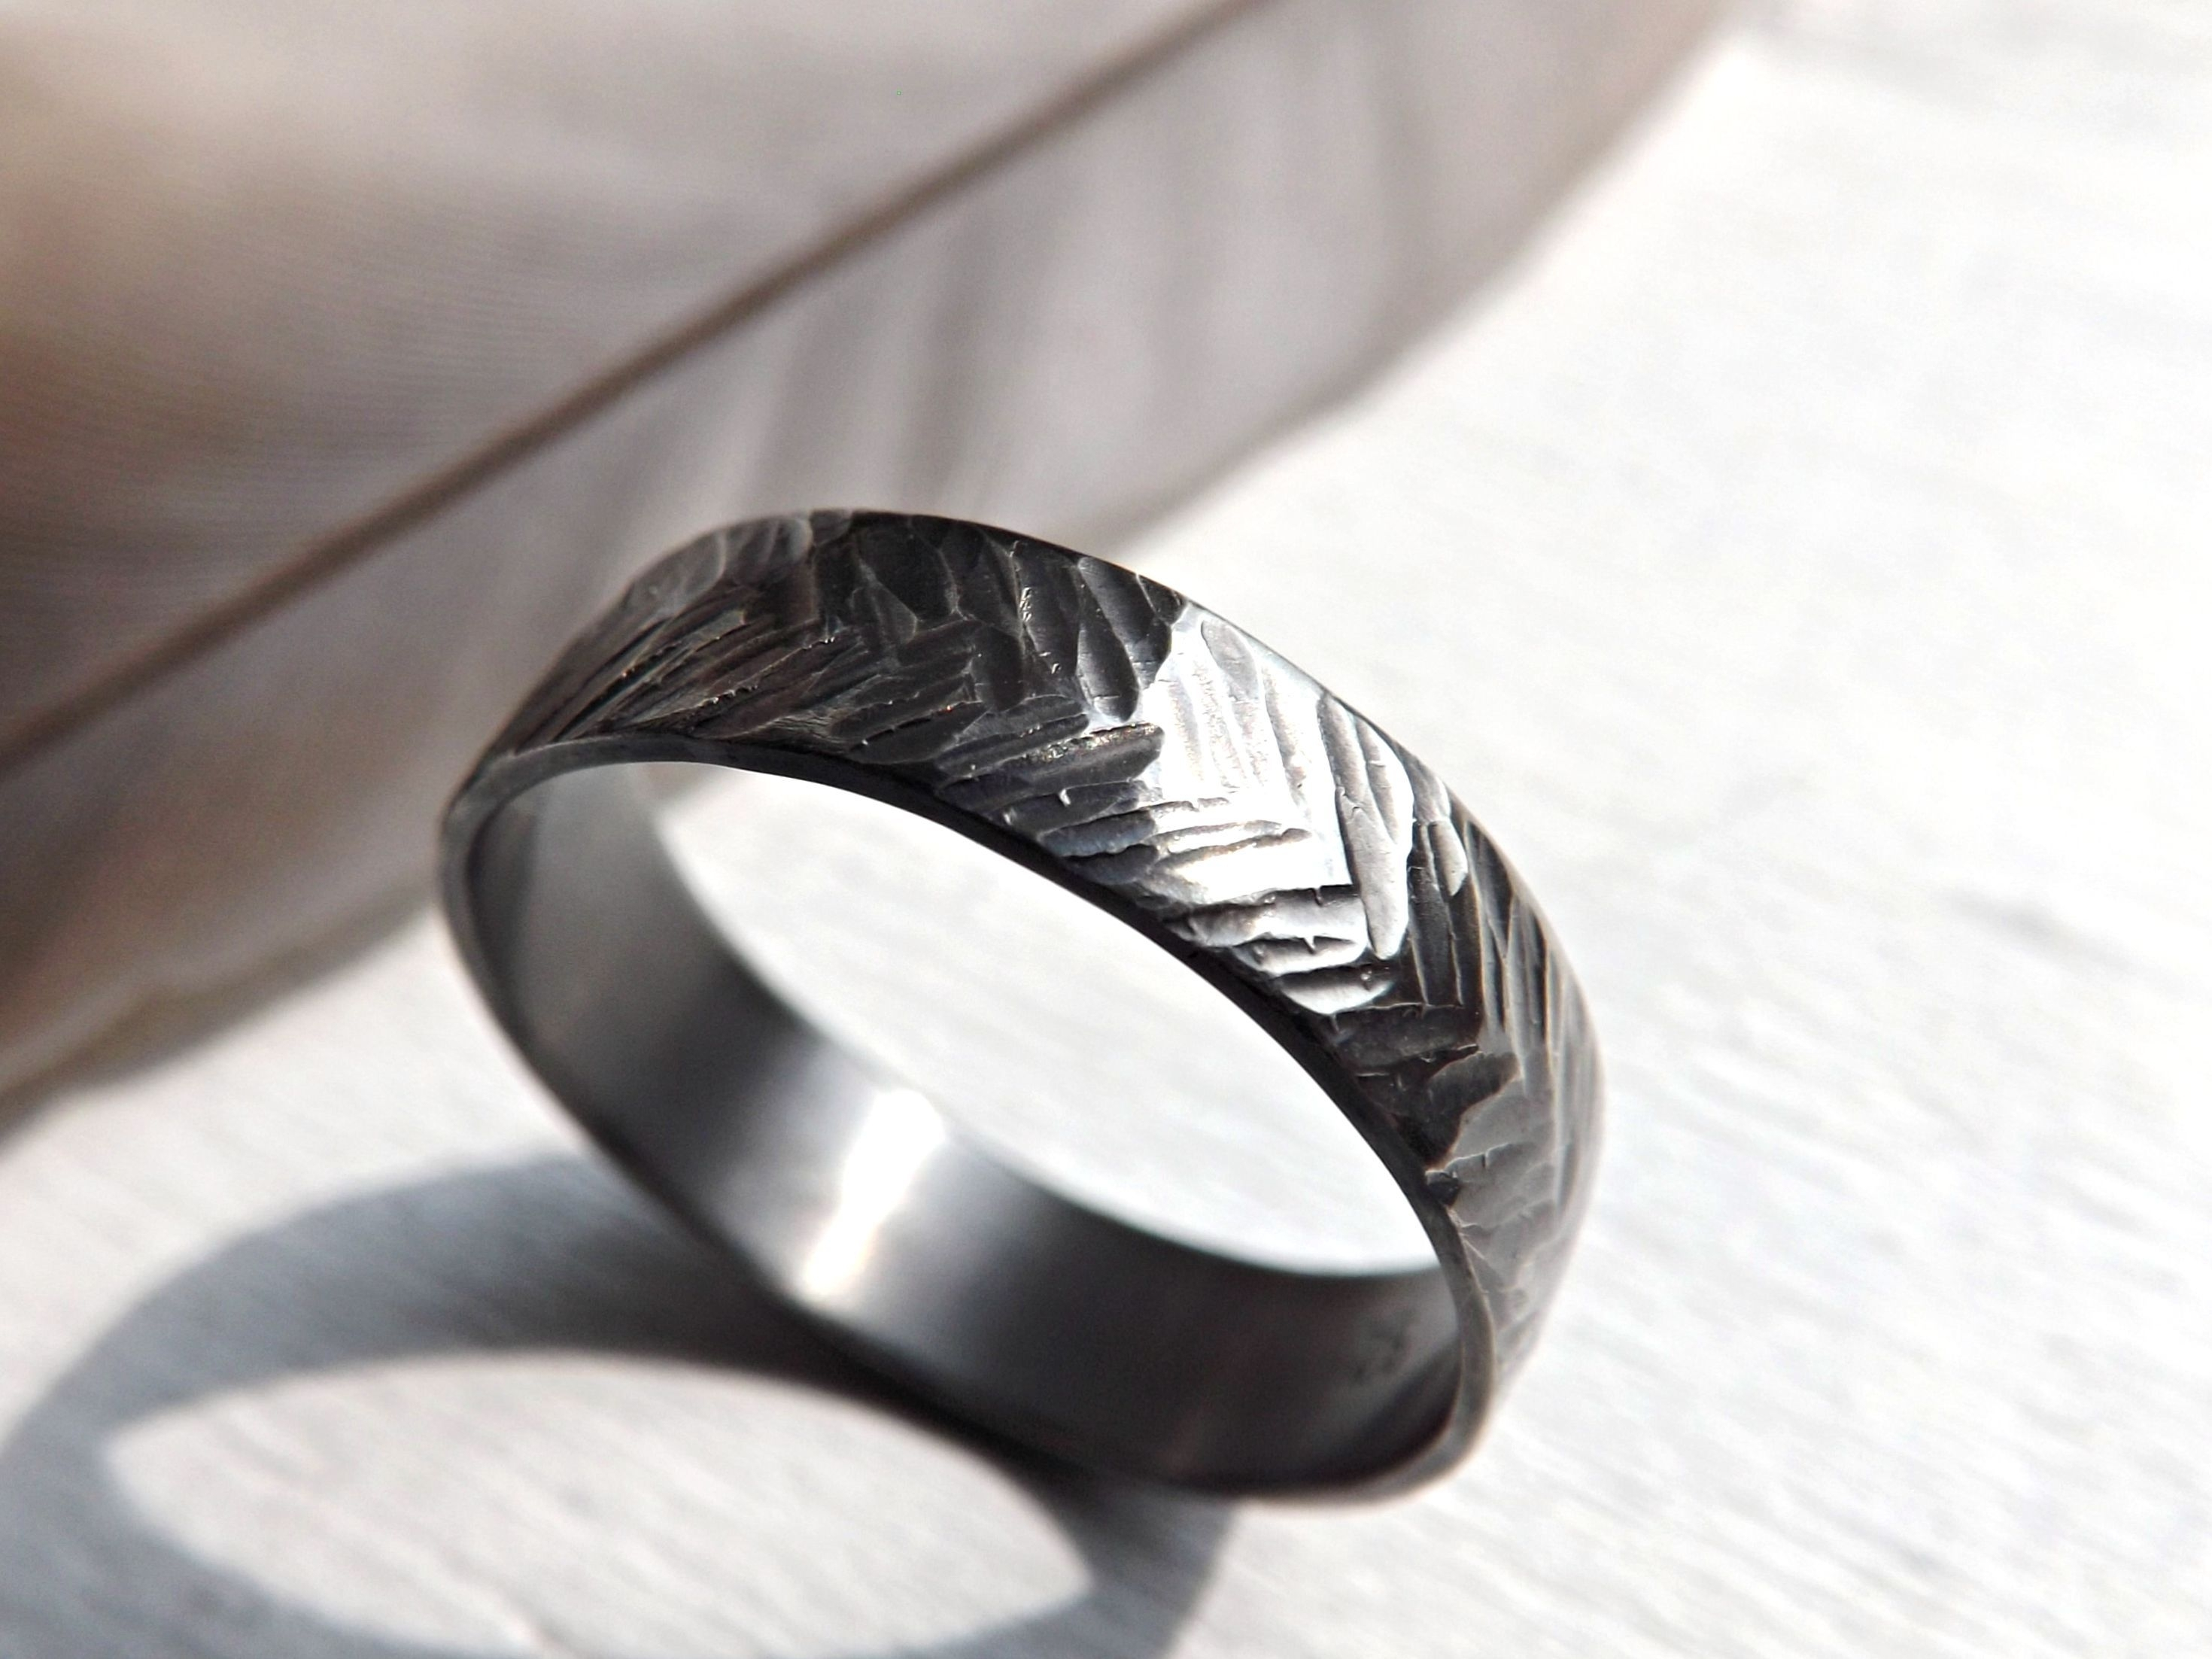 Buy A Handmade Chevron Wedding Ring Silver, Sterling Silver Ring Intended For Most Recently Released Men's Chevron Rings (Gallery 1 of 15)